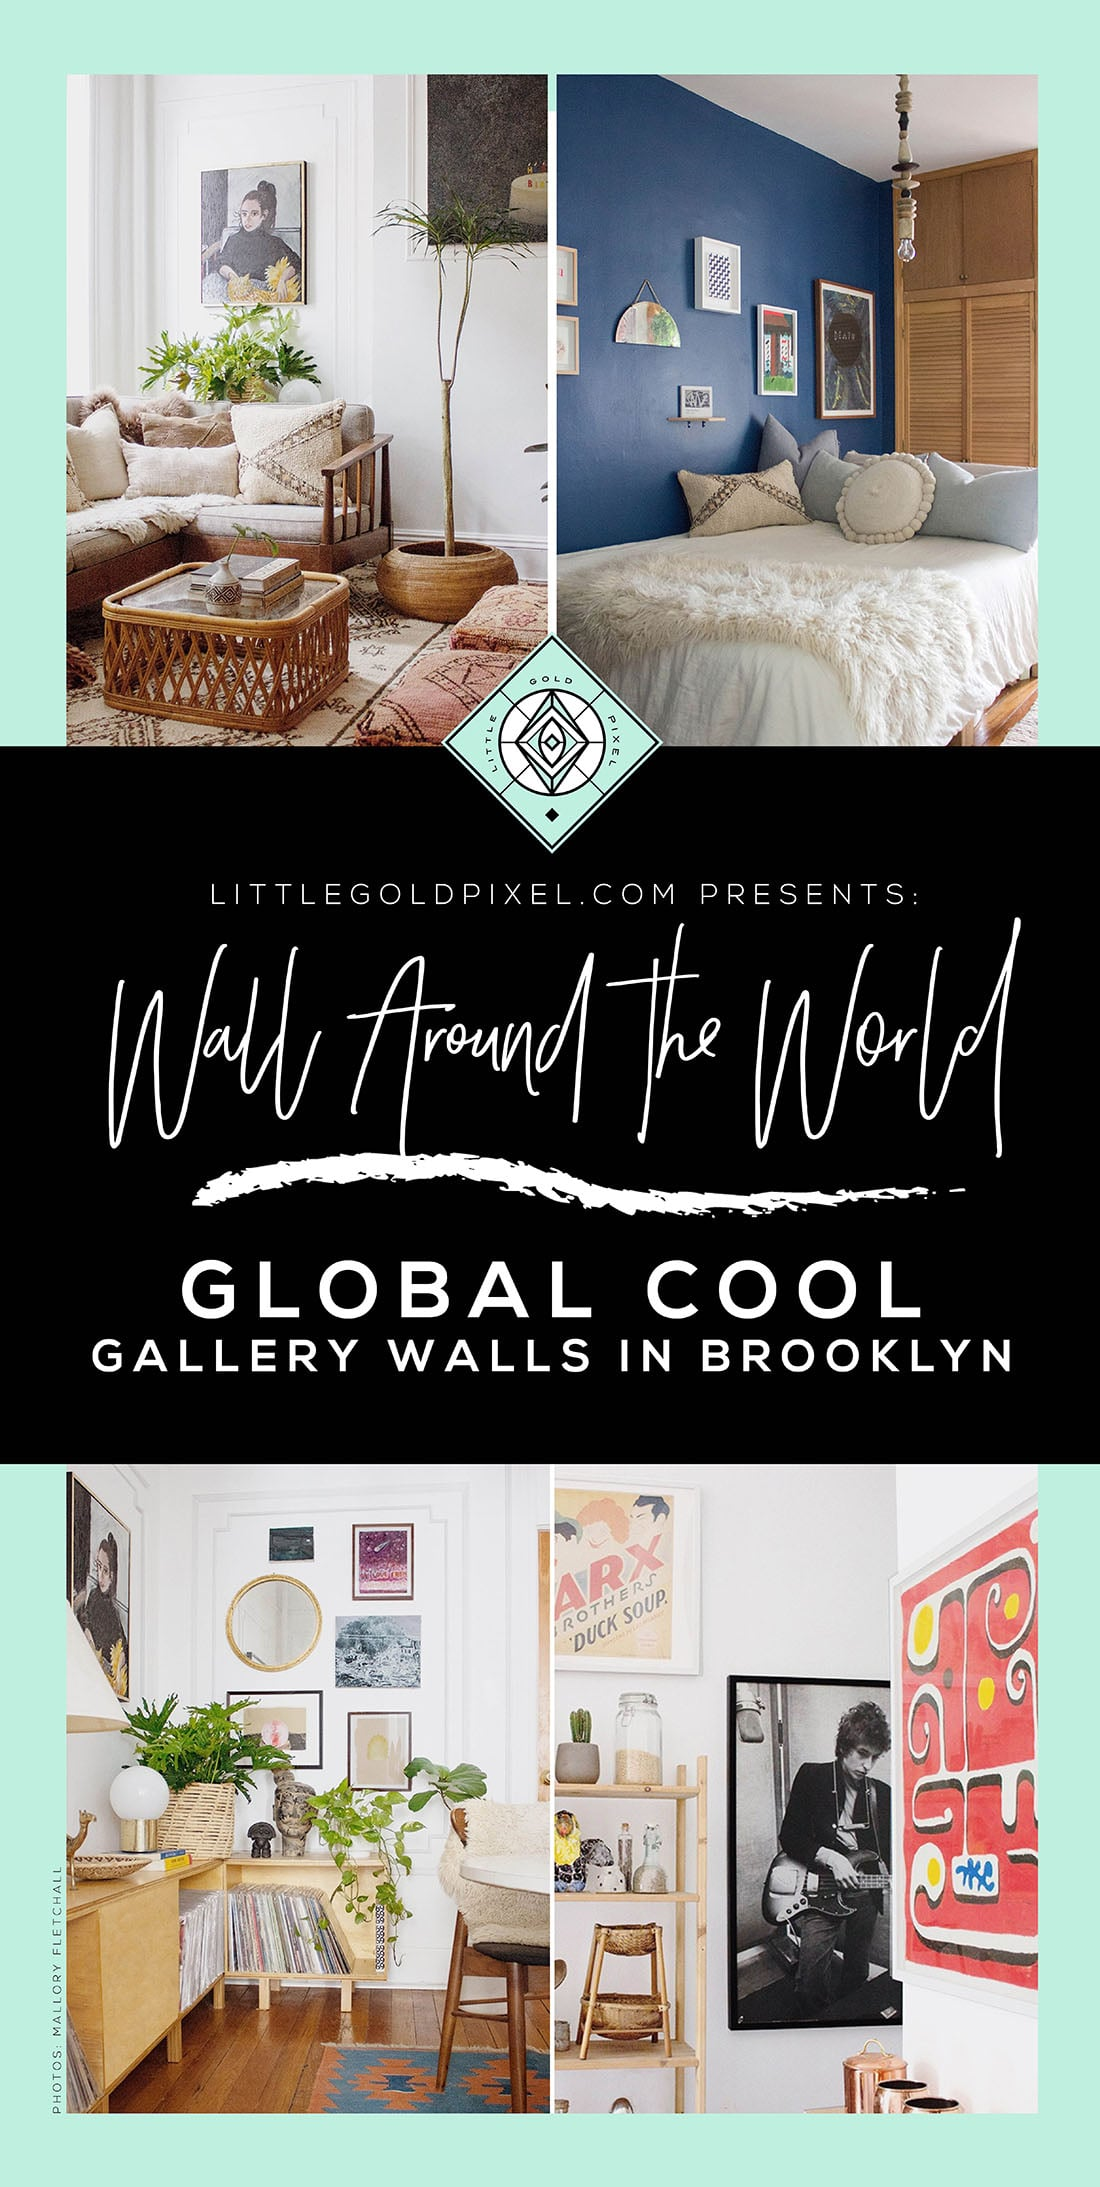 In this installment of the Wall Around the World home tour series, Mallory gives us the inside scoop on her global cool gallery walls and California-cool-meets-Mid-Century Modern home decor. • Little Gold Pixel • Photos © Mallory Fletchall